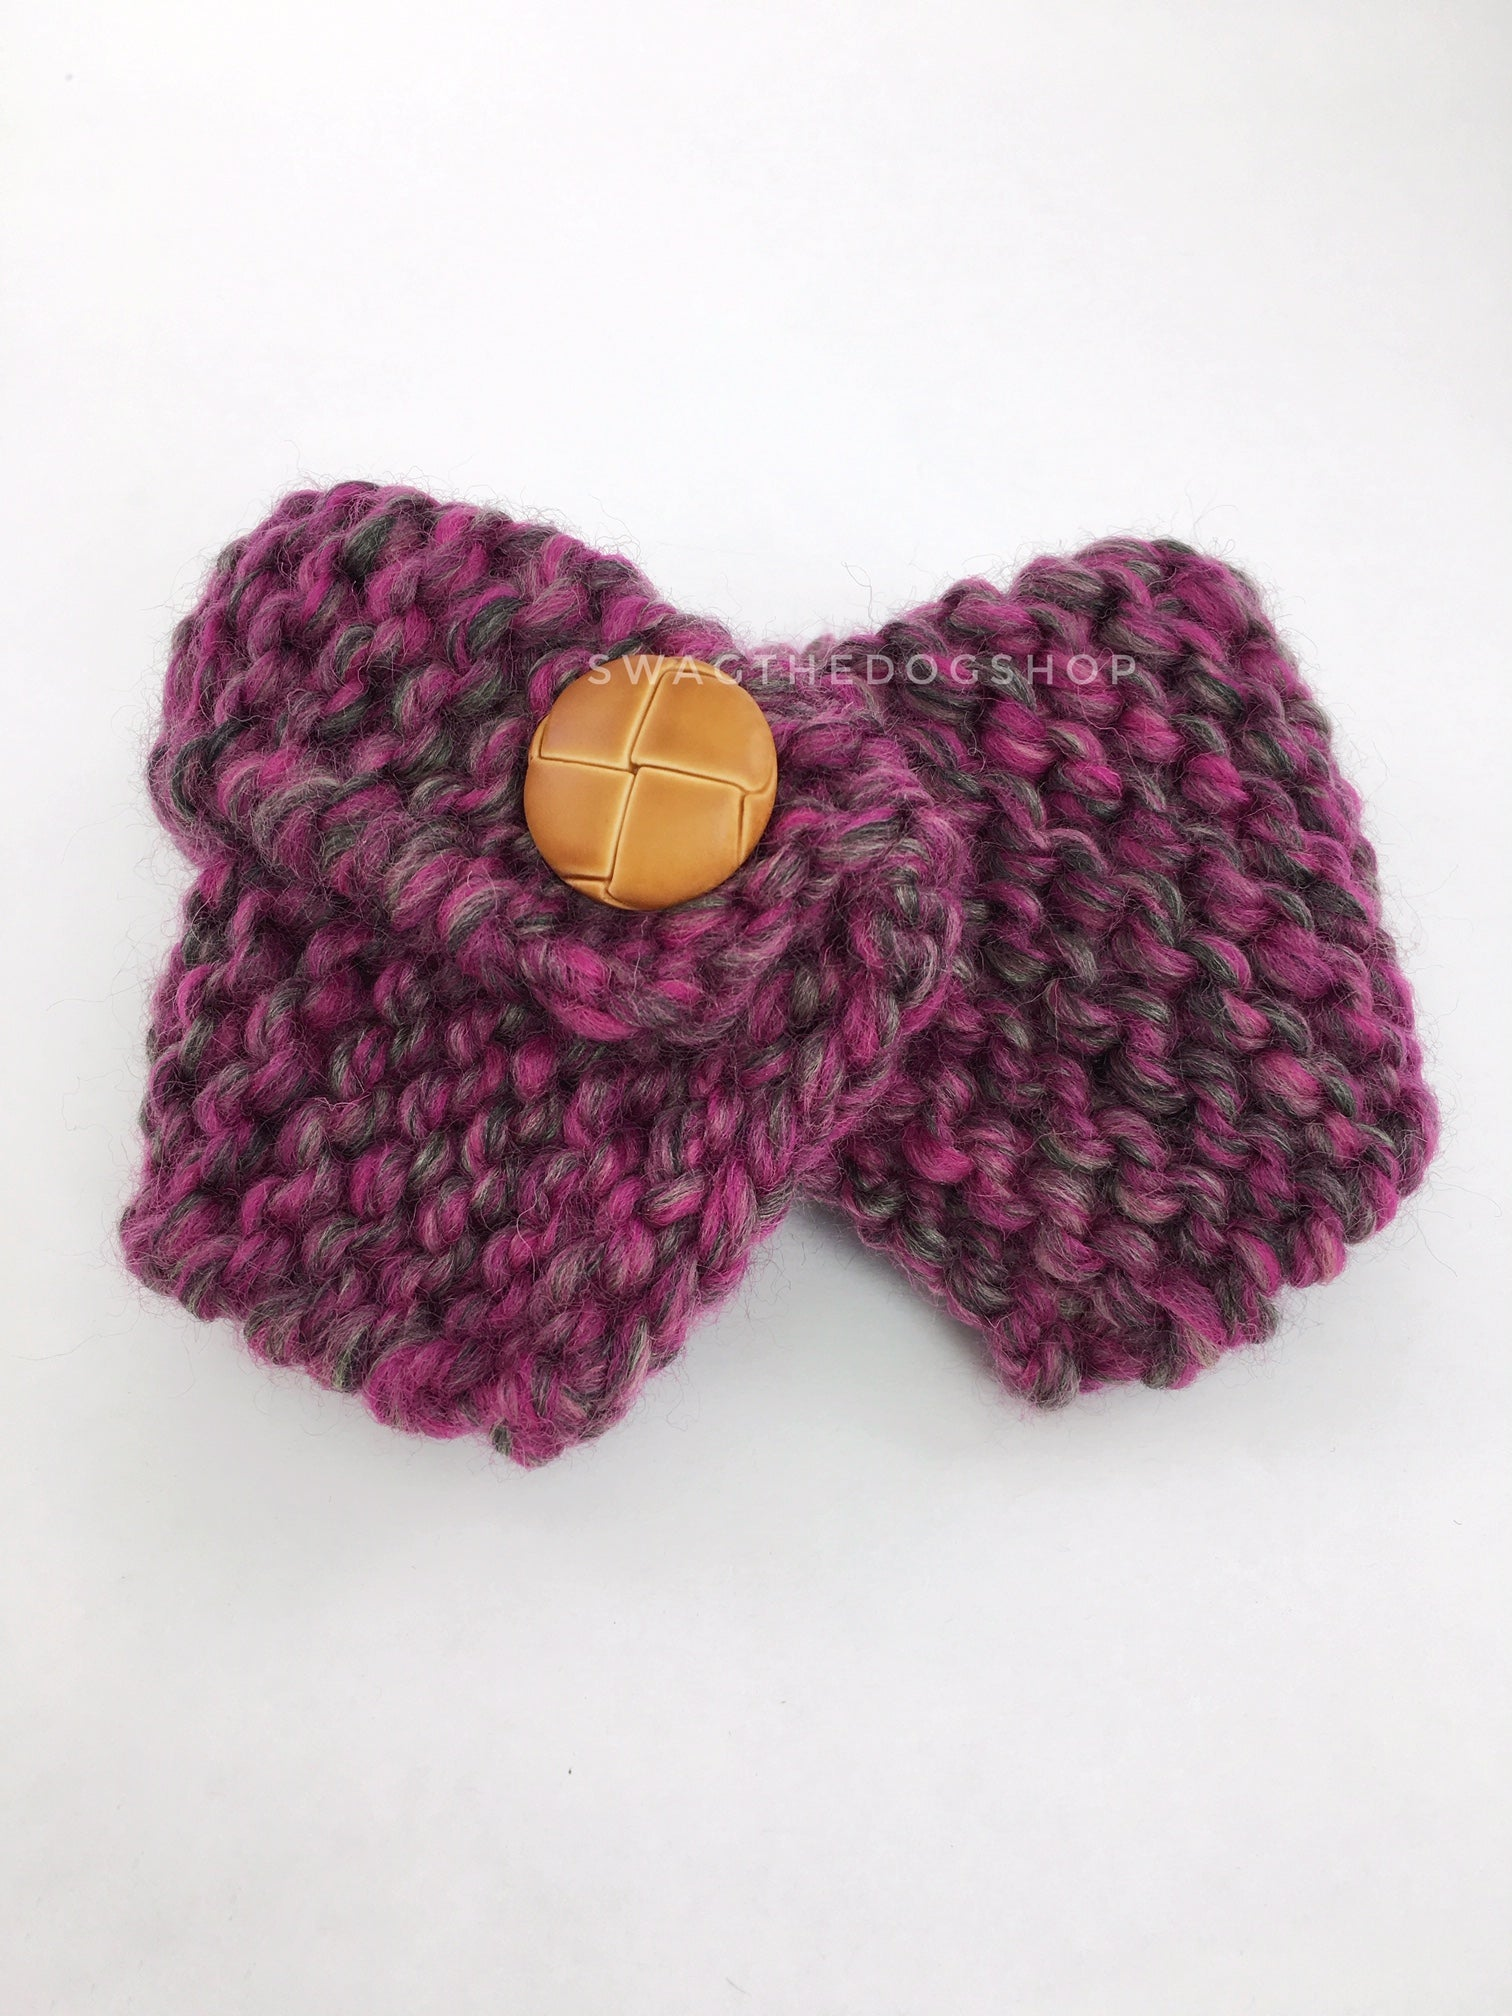 Berries Swagsnood - Product Front View. Pink Gray Mixed Color Dog Snood with Accent Button